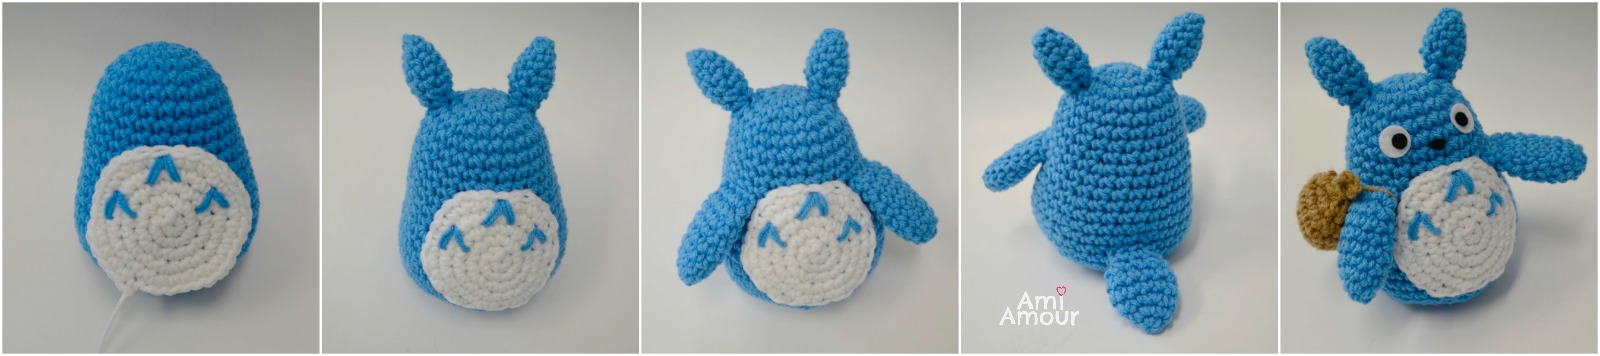 Totoro Amigurumi Patterns and Stop Animation | 356x1600